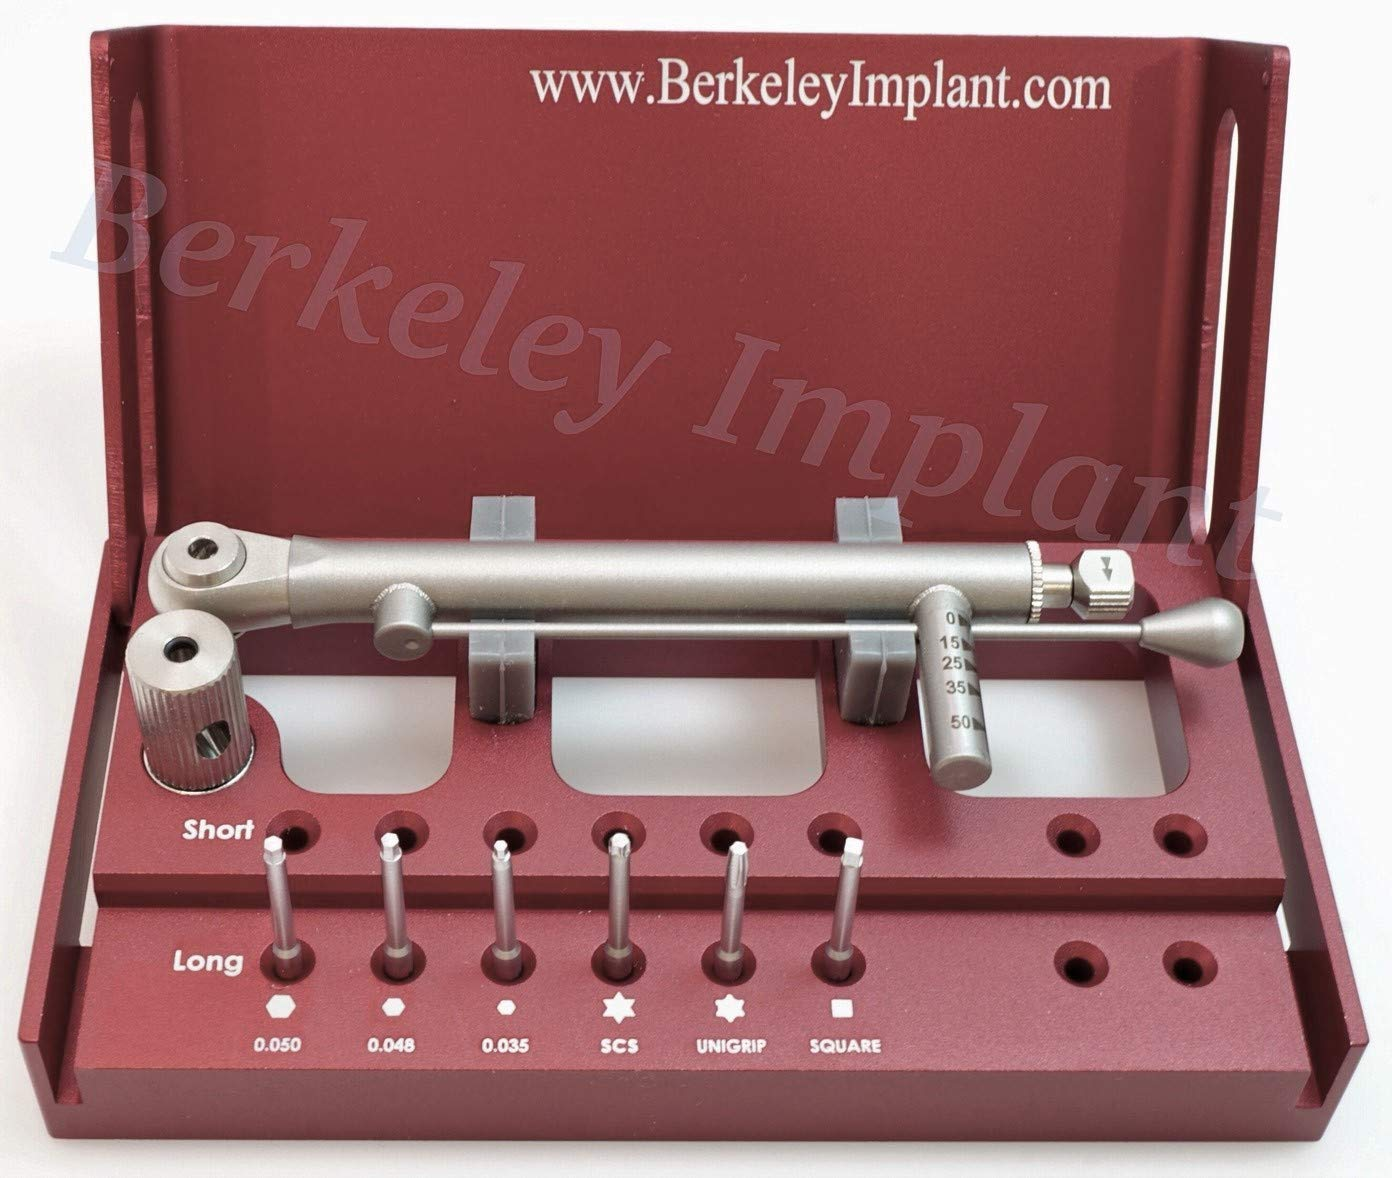 Dental Implant Latch-Type Multi-Driver Set (Long Drivers) for Dental Practices by Berkeley Implant (Image #1)